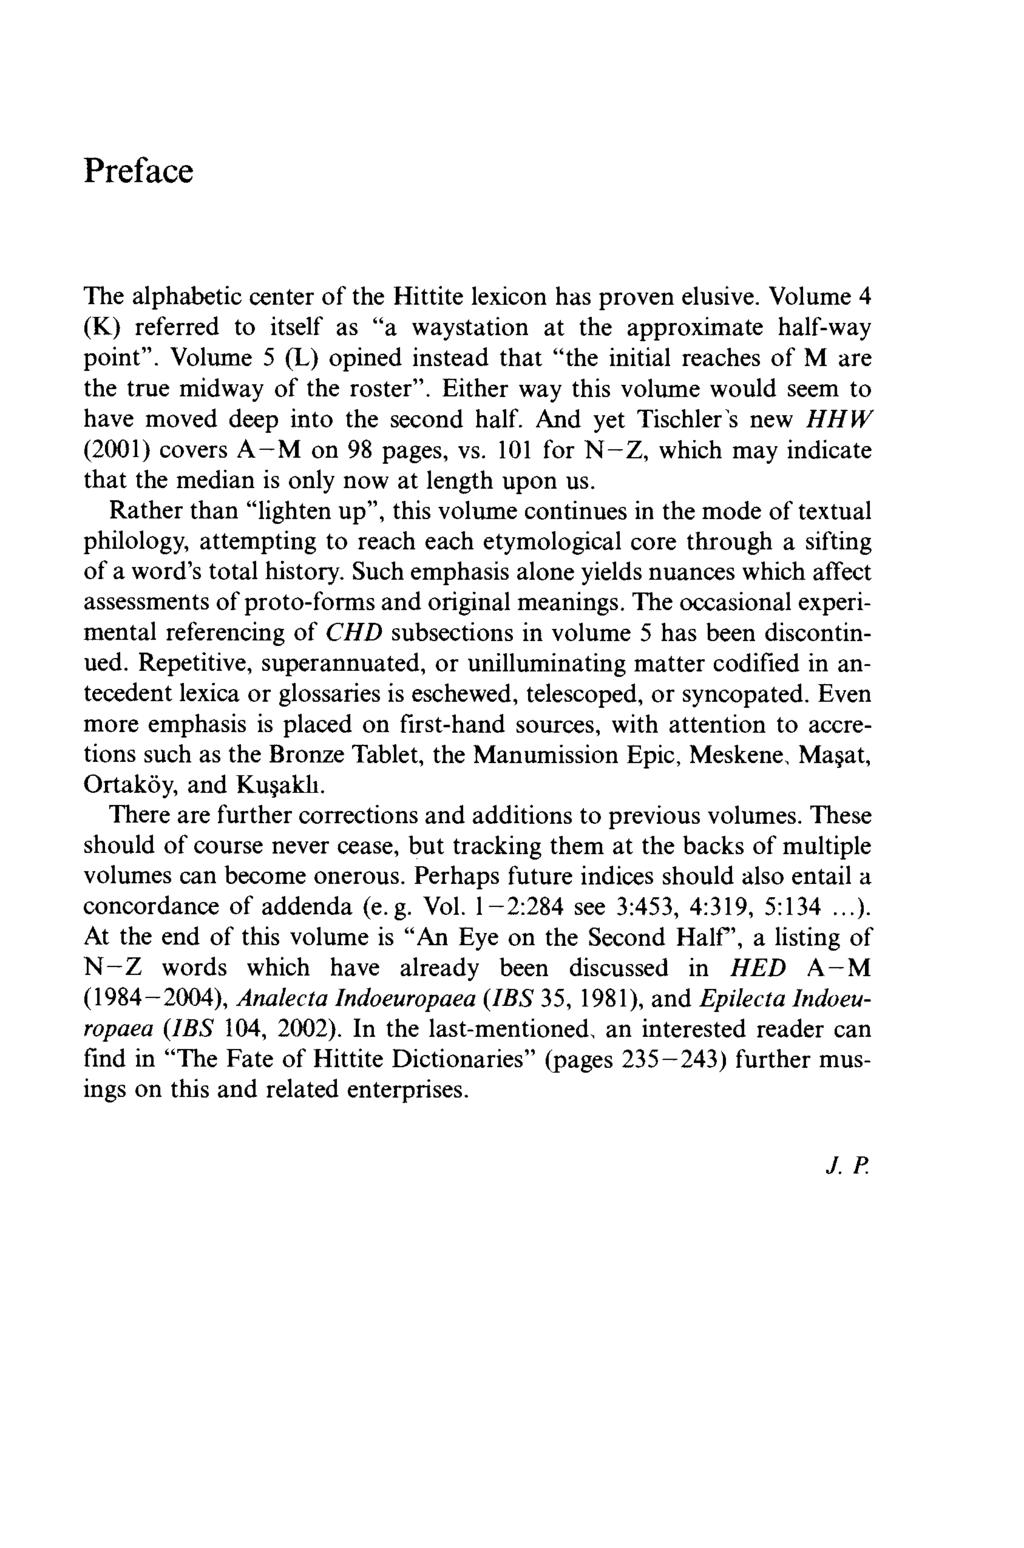 Preface The alphabetic center of the Hittite lexicon has proven elusive. Volume 4 (K) referred to itself as a waystation at the approximate half-way point.